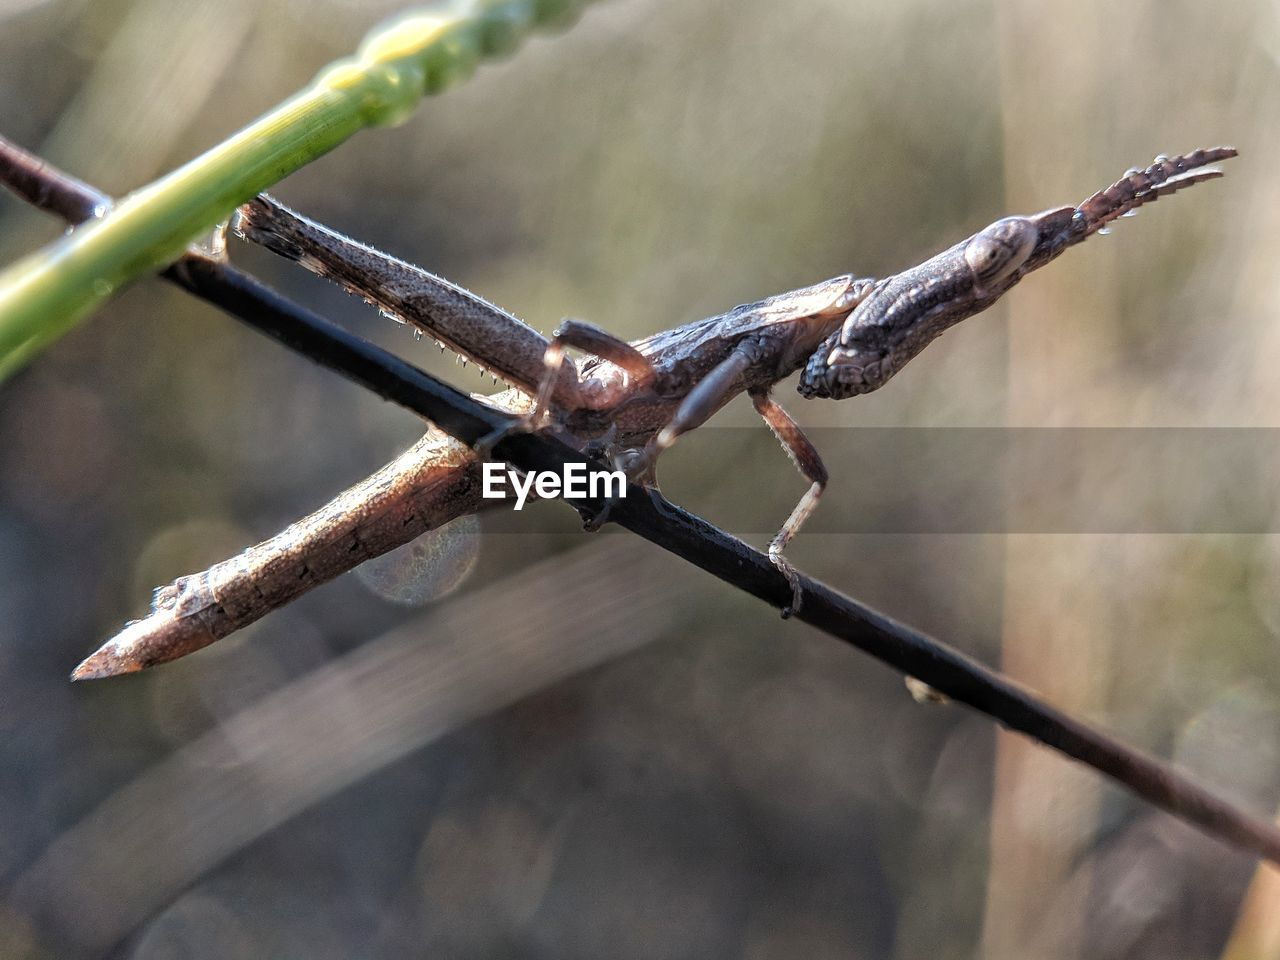 animals in the wild, focus on foreground, animal wildlife, close-up, one animal, animal, animal themes, day, invertebrate, no people, insect, nature, zoology, metal, outdoors, fence, selective focus, wire, twig, plant